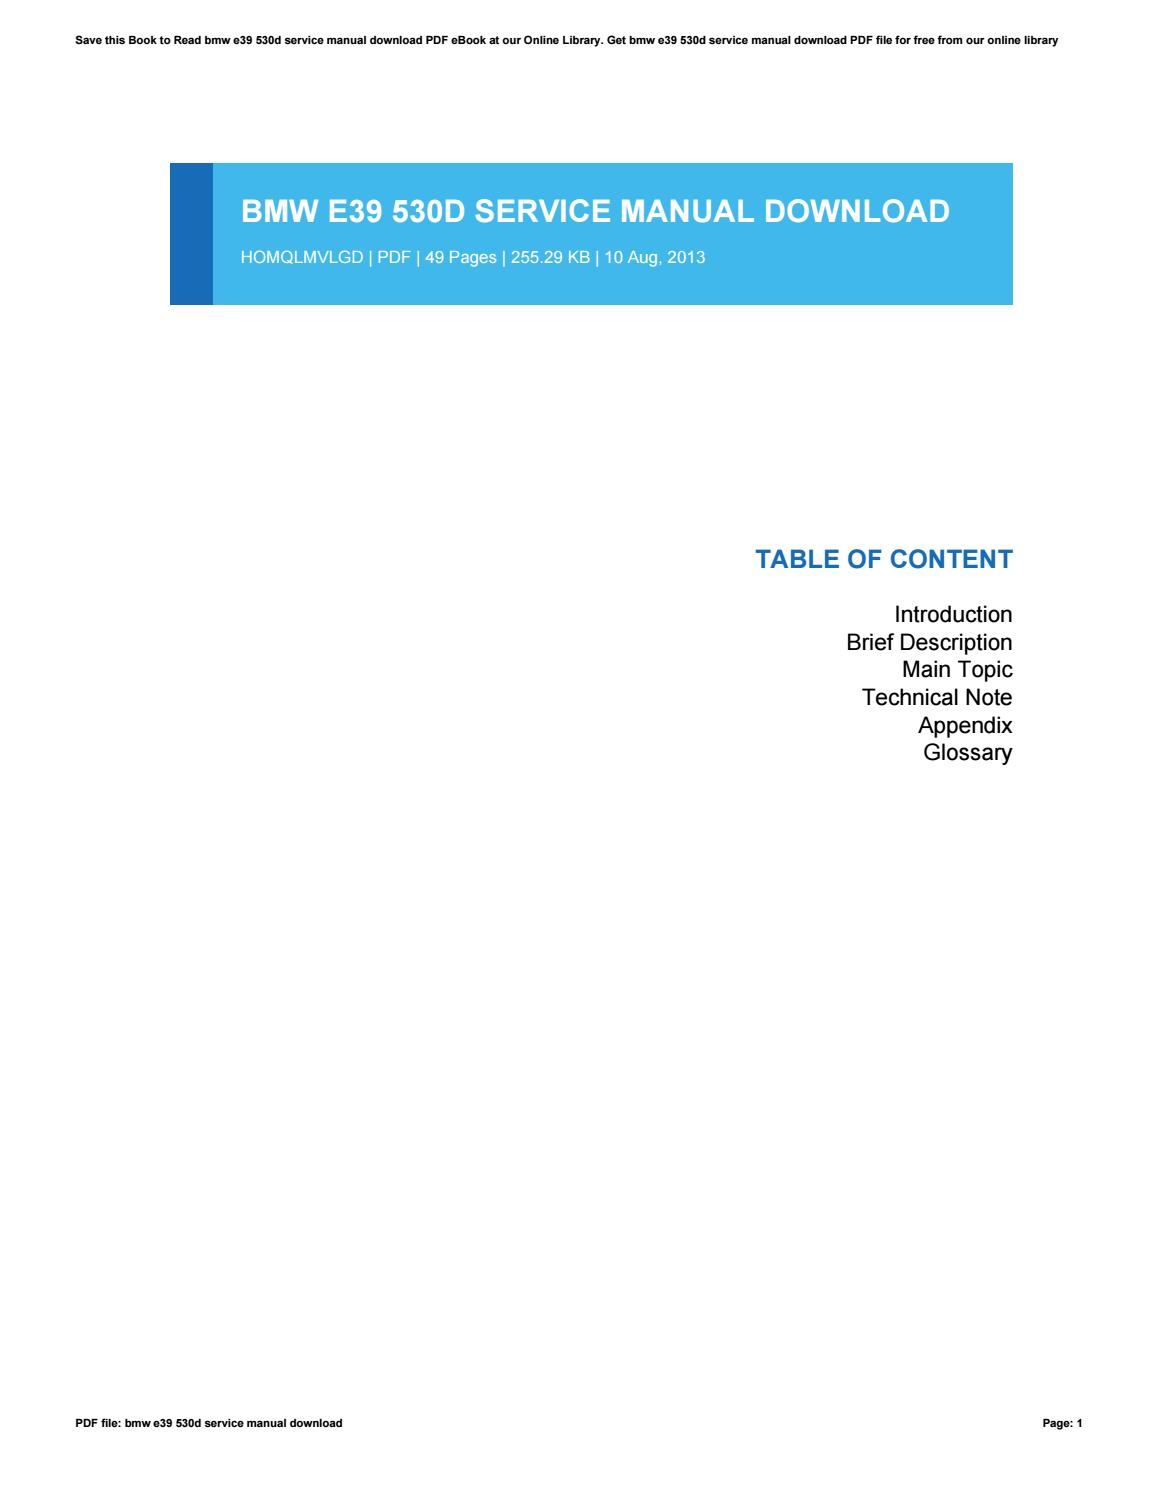 Bmw e39 530d service manual download by SaraSeery4145 - issuu